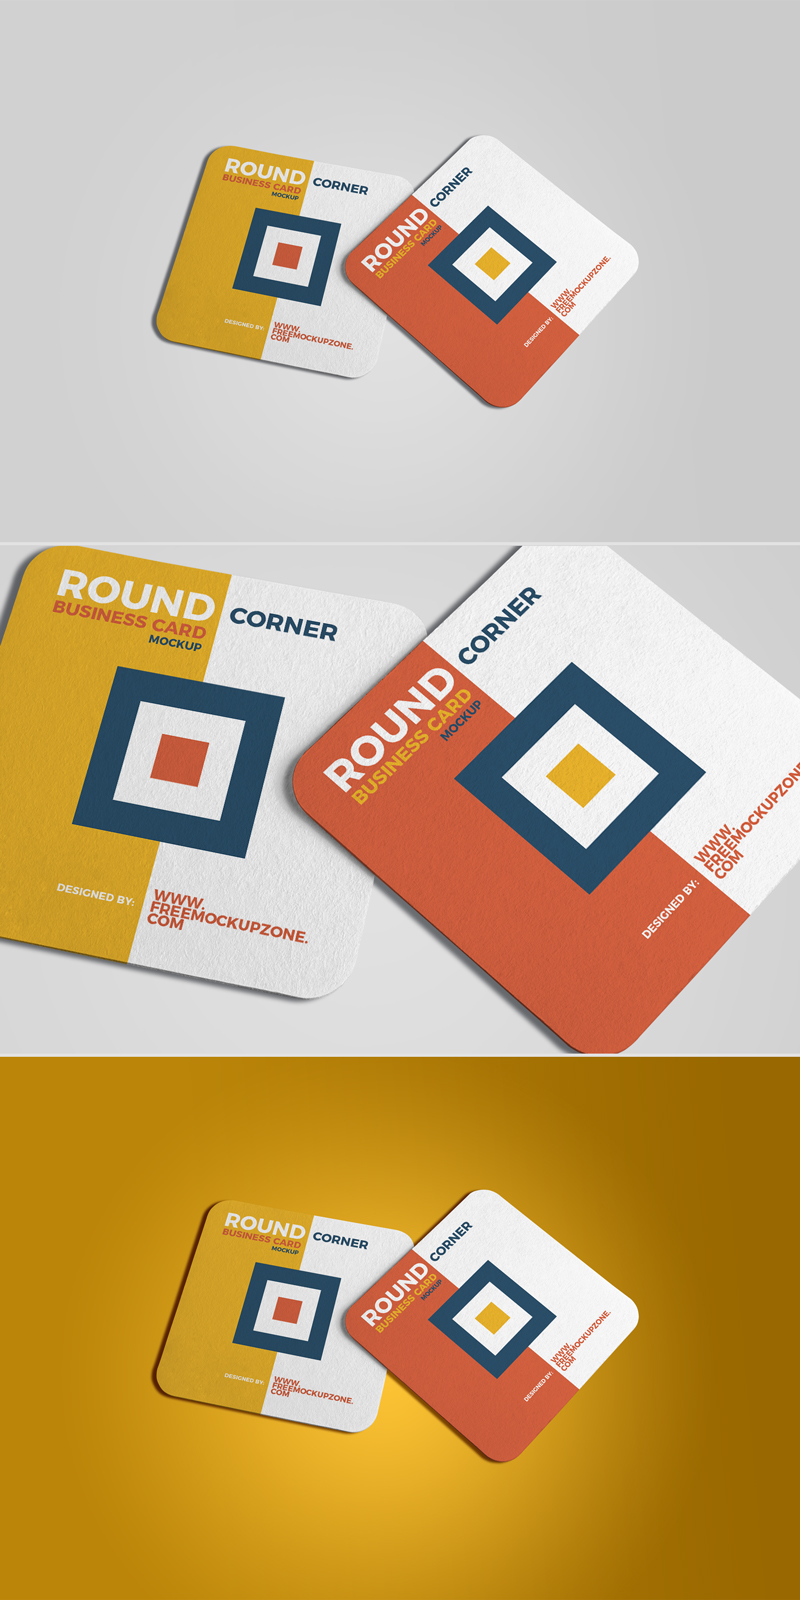 Free-Square-Round-Corner-Business-Card-Mockup-2018